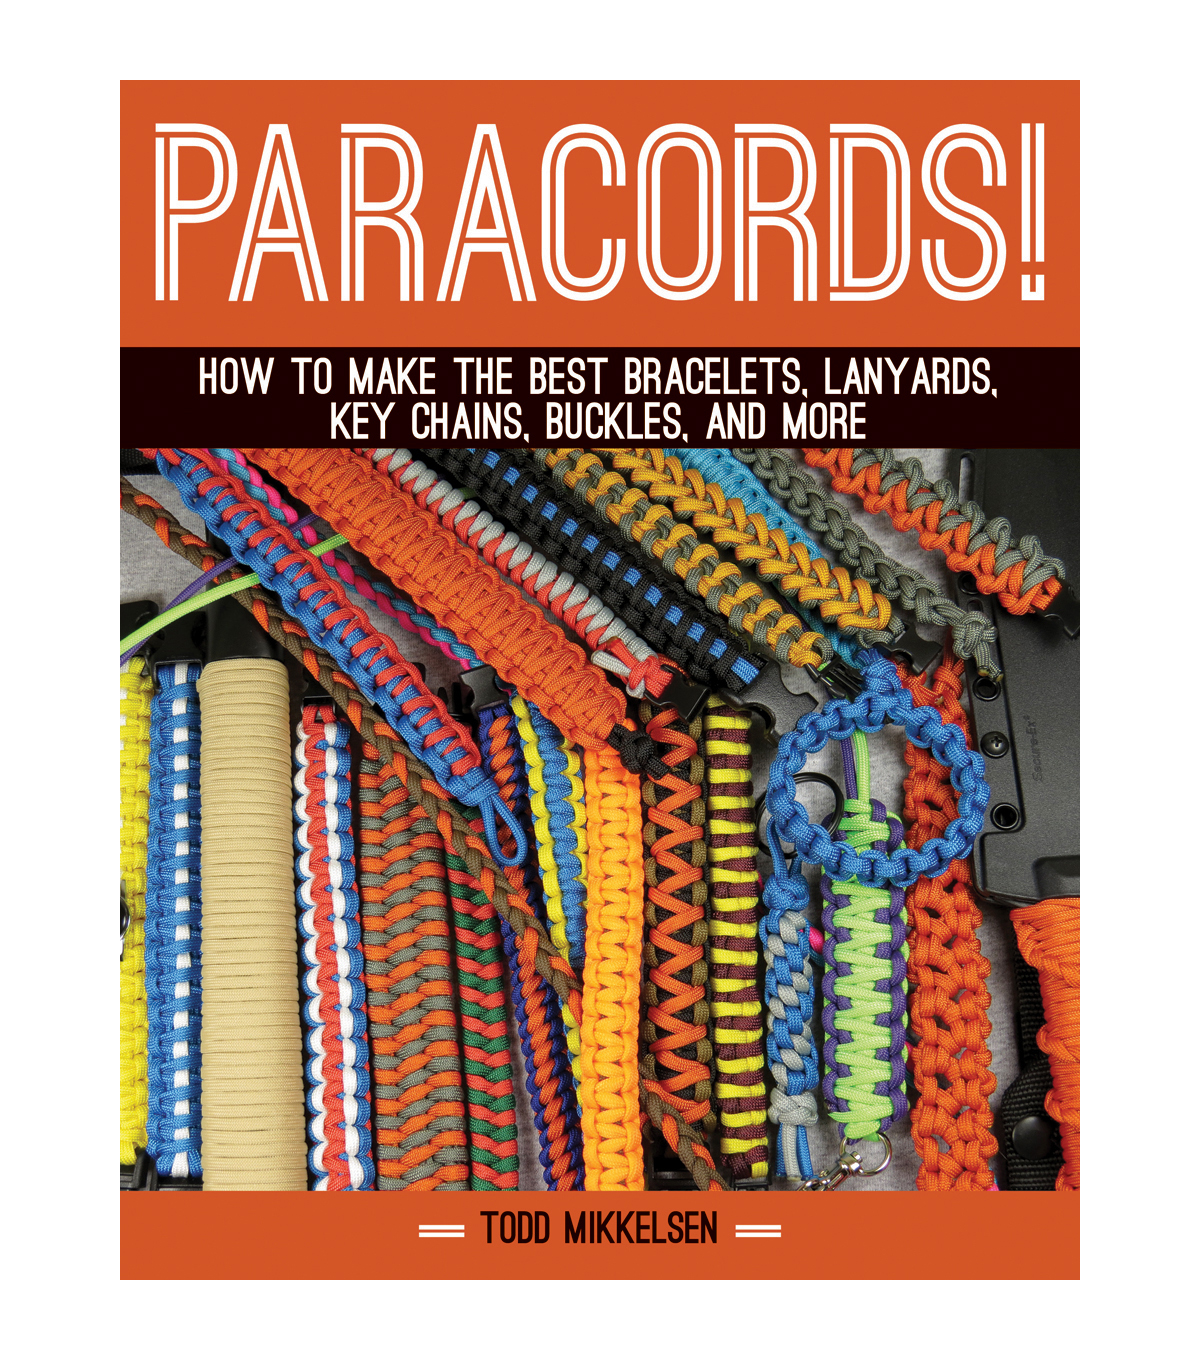 Paracords! Book-How to Make the Best Bracelets Lanyards & More